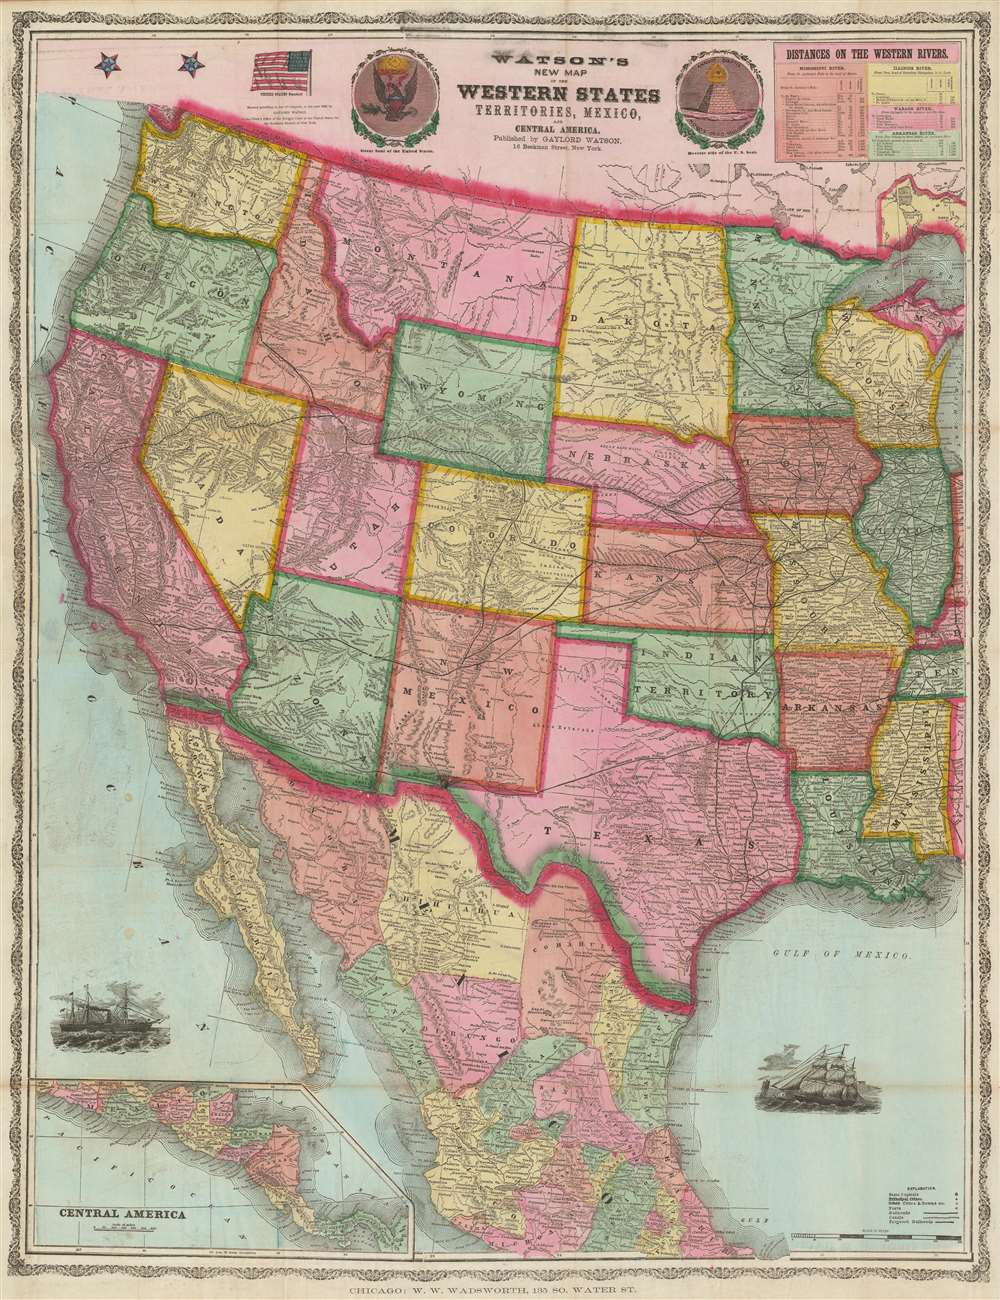 Watson's New Map of the Western States Territories, Mexico and Central America.